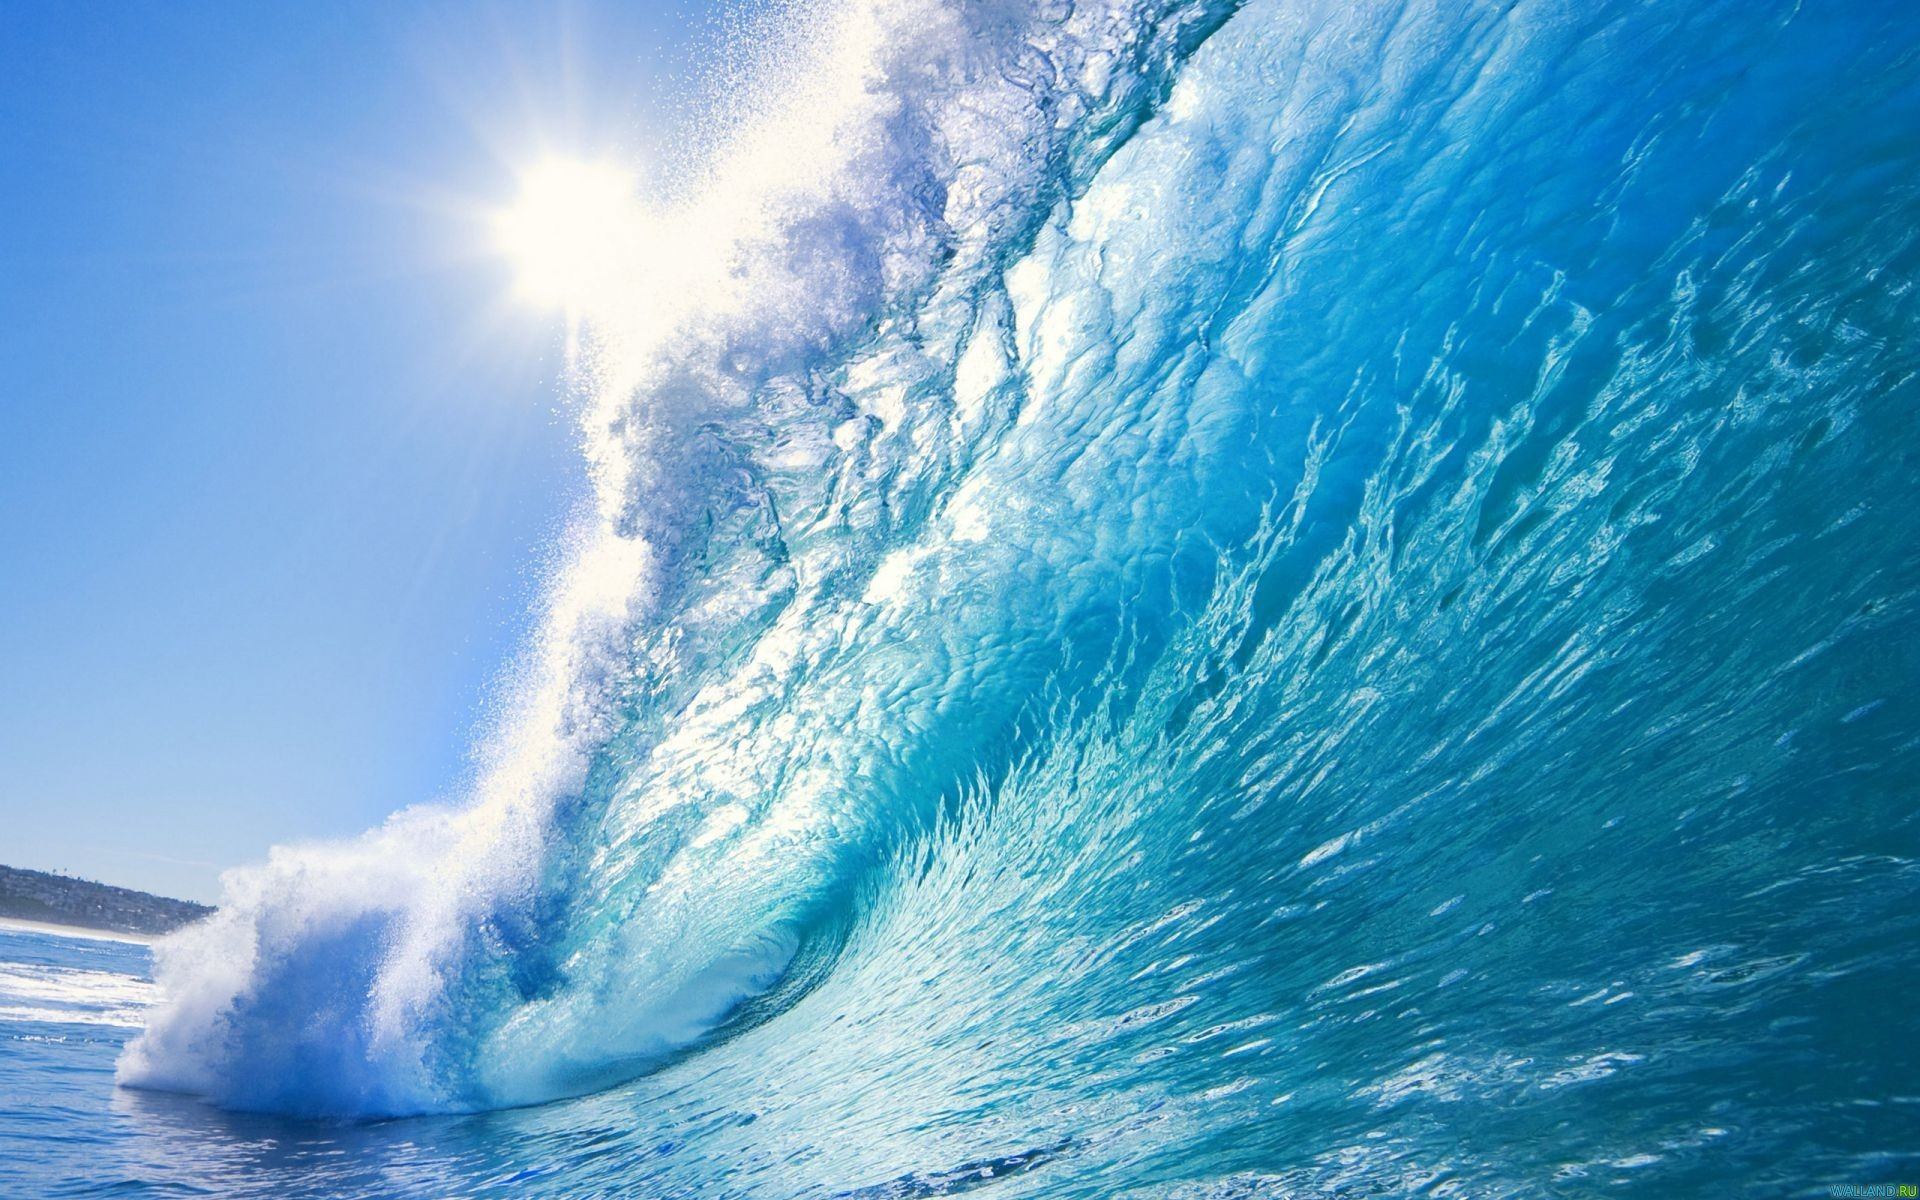 Image Beautiful Ocean Wave Wallpapers And Stock Photos